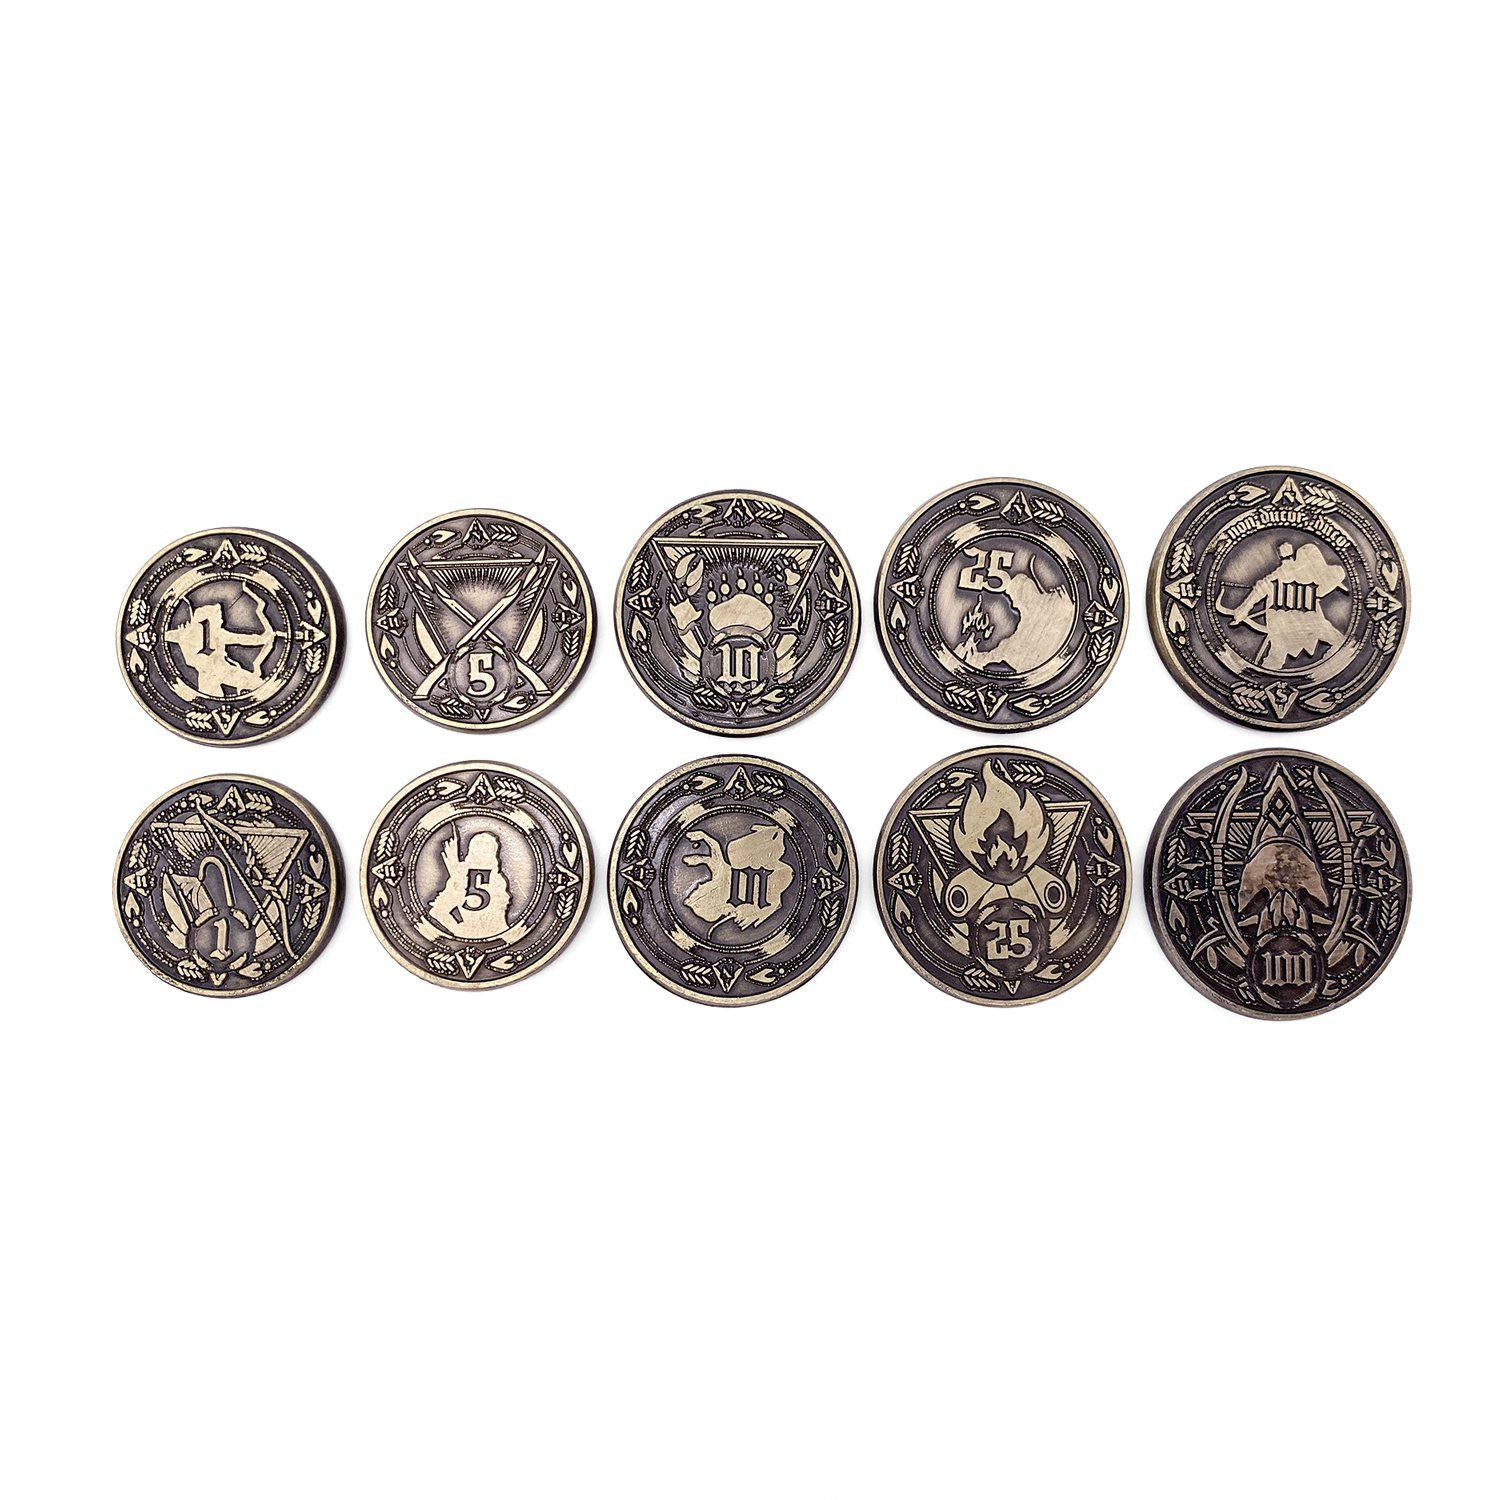 Adventure Coins - Ranger Metal Coins Set of 10